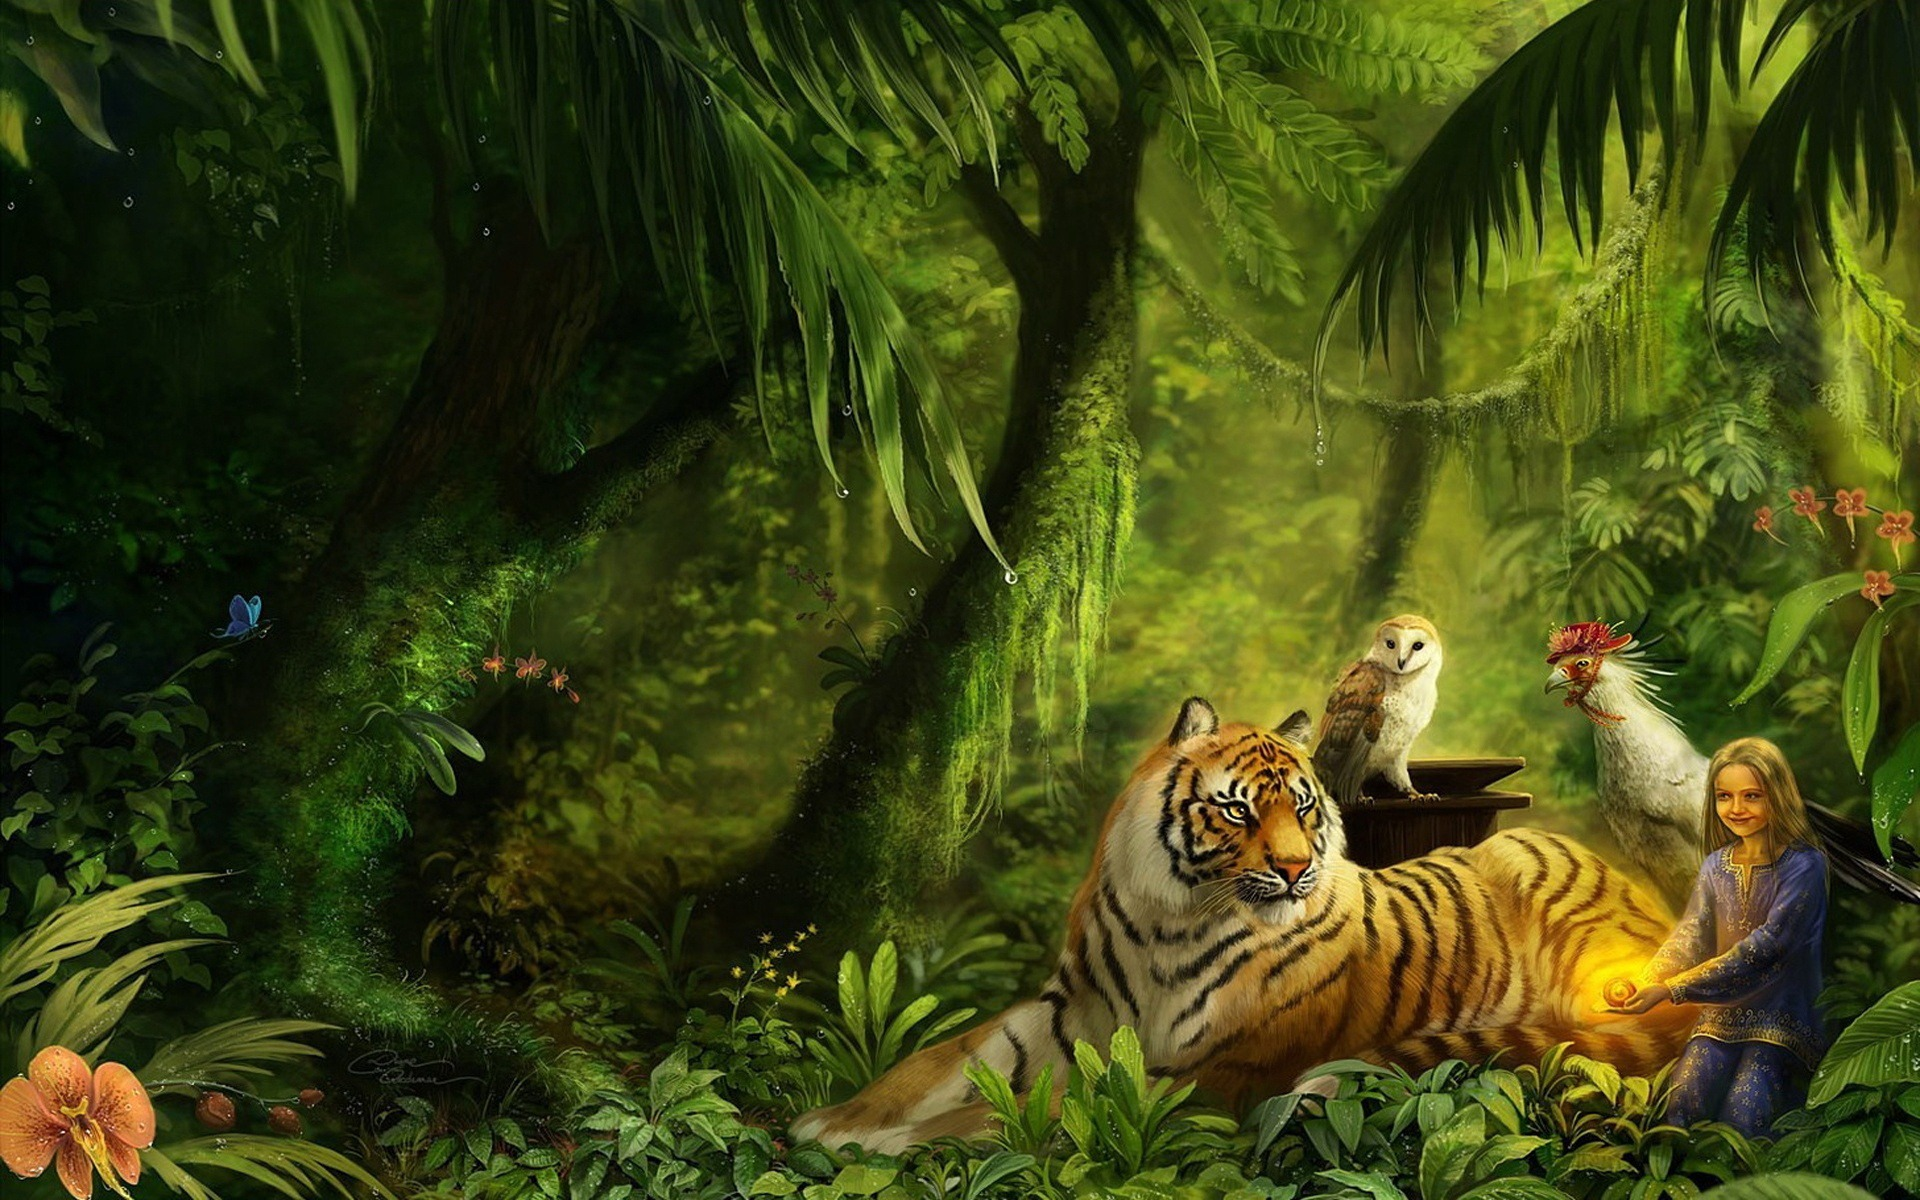 Tiger HD Photos Wild Animal Wallpapers Images Pictures